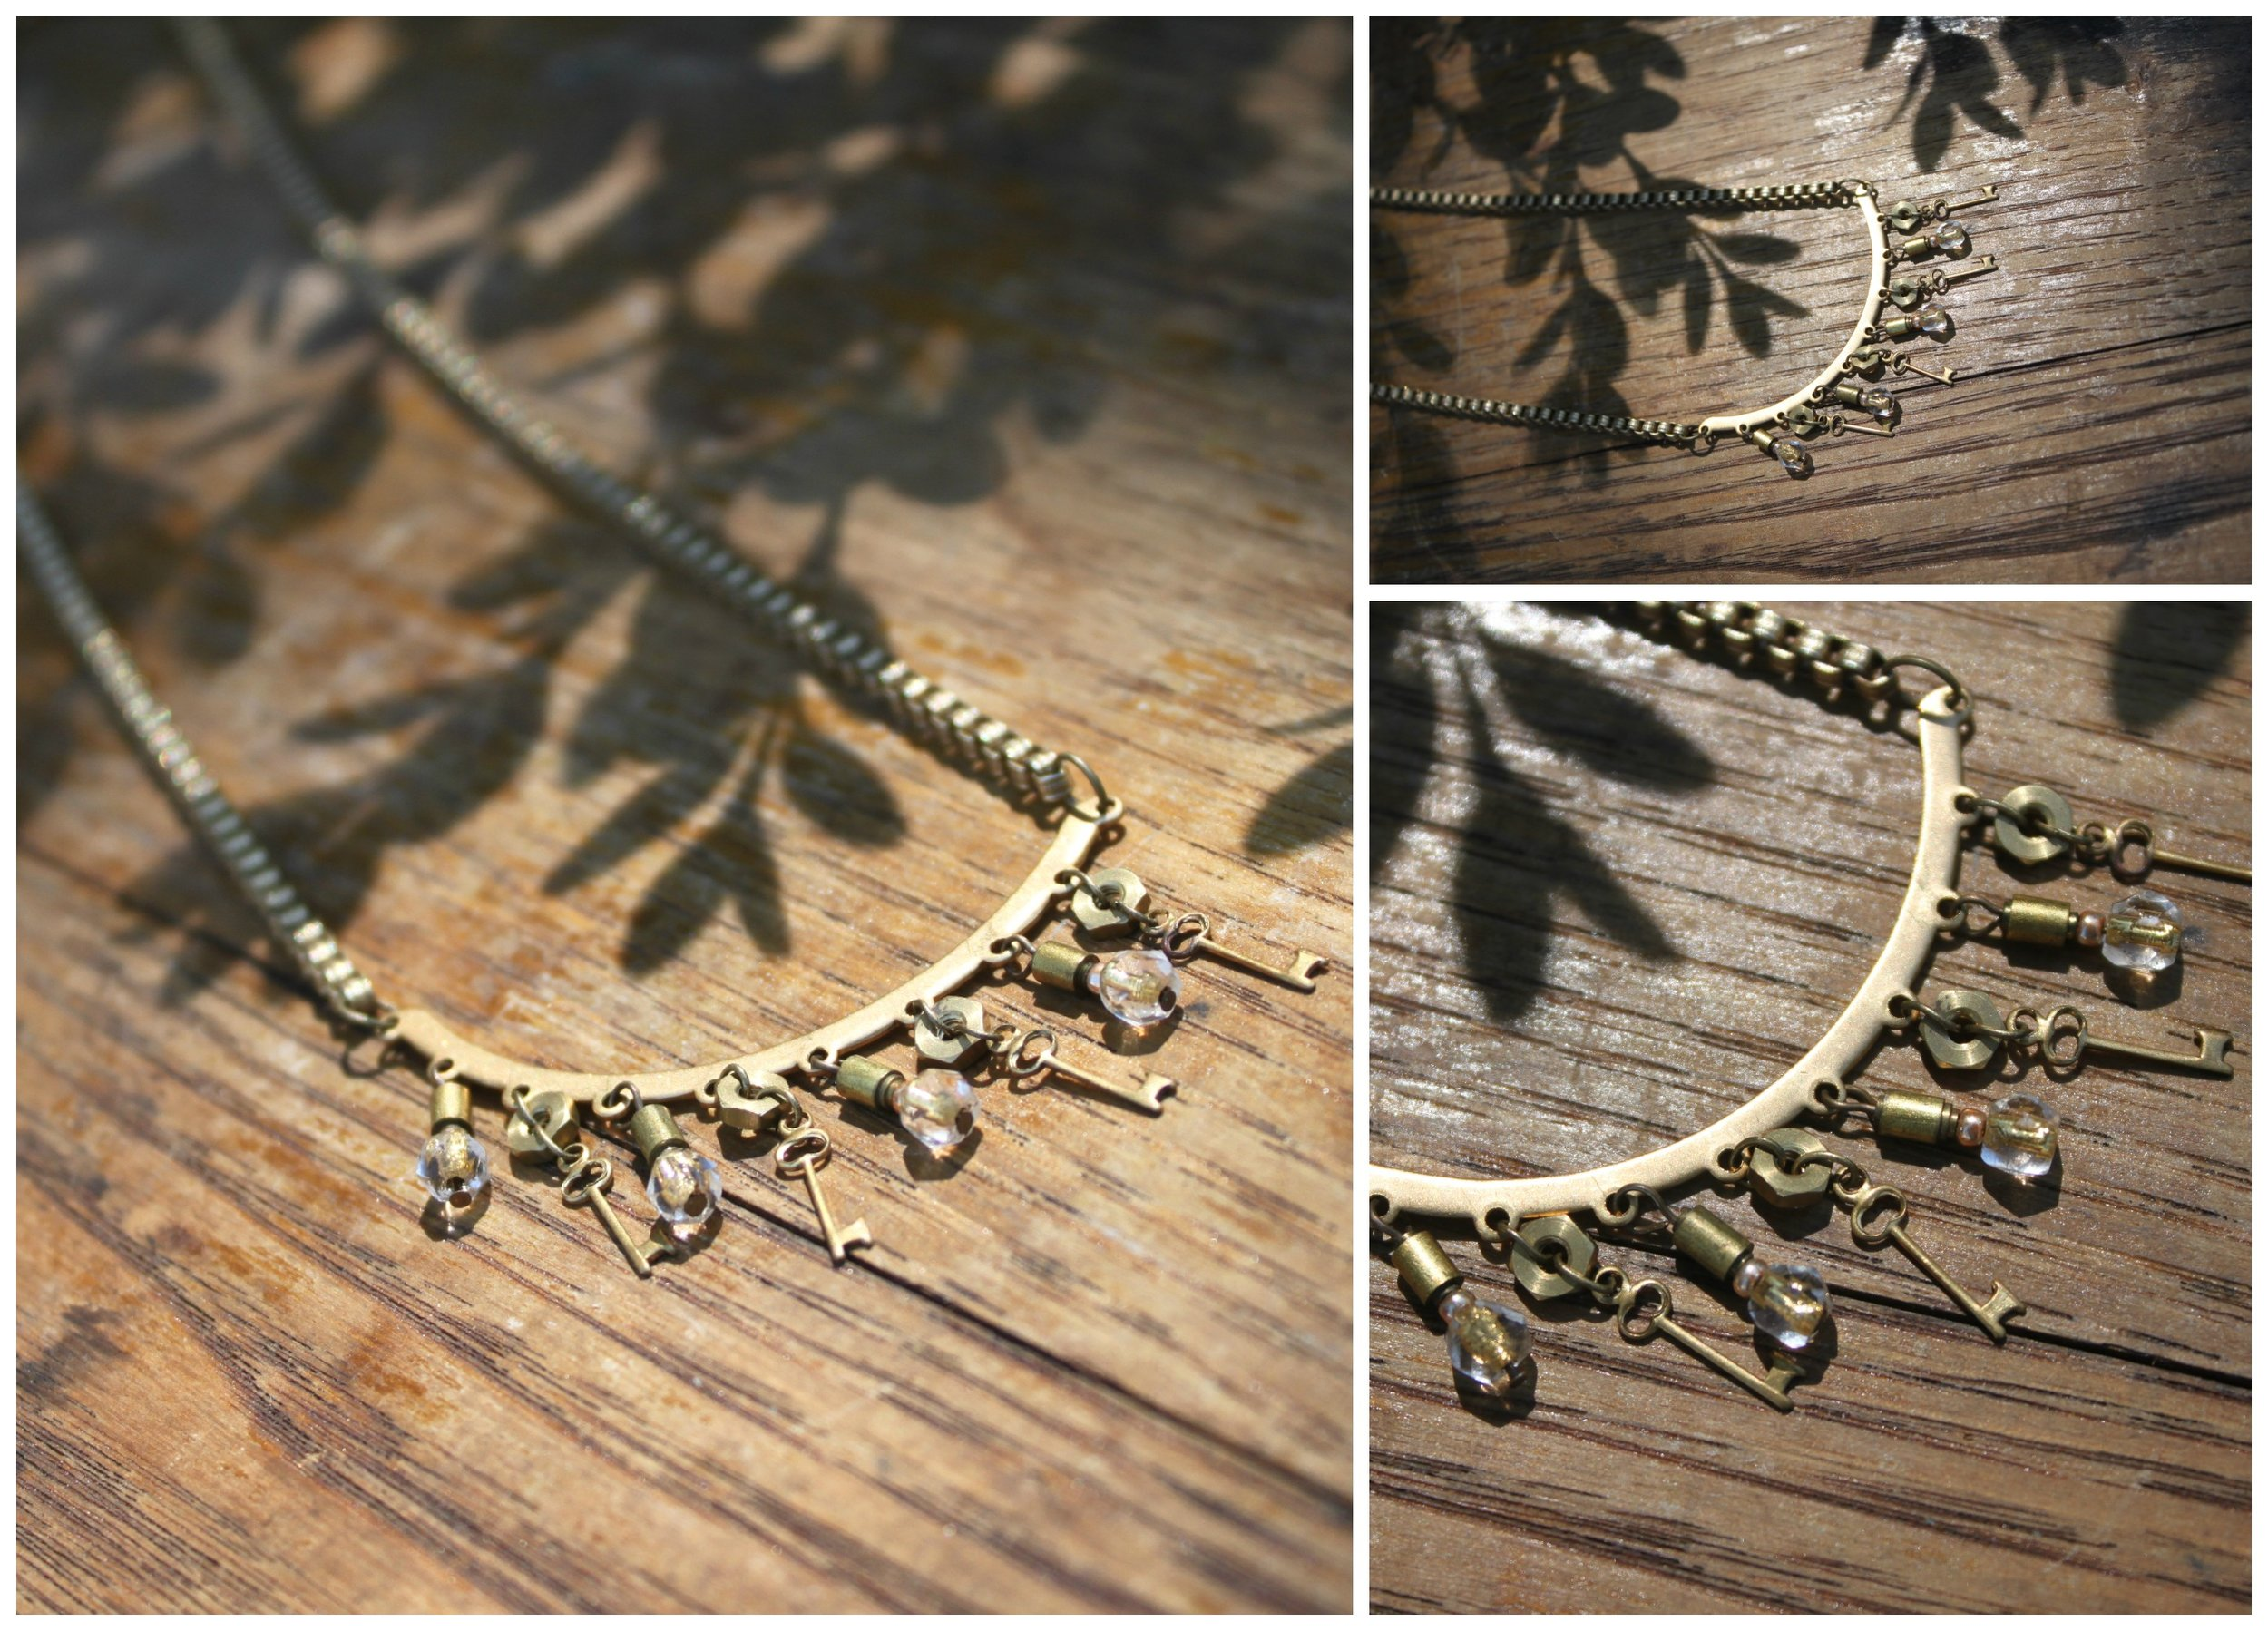 Steampunk Golden Key Necklace Collage